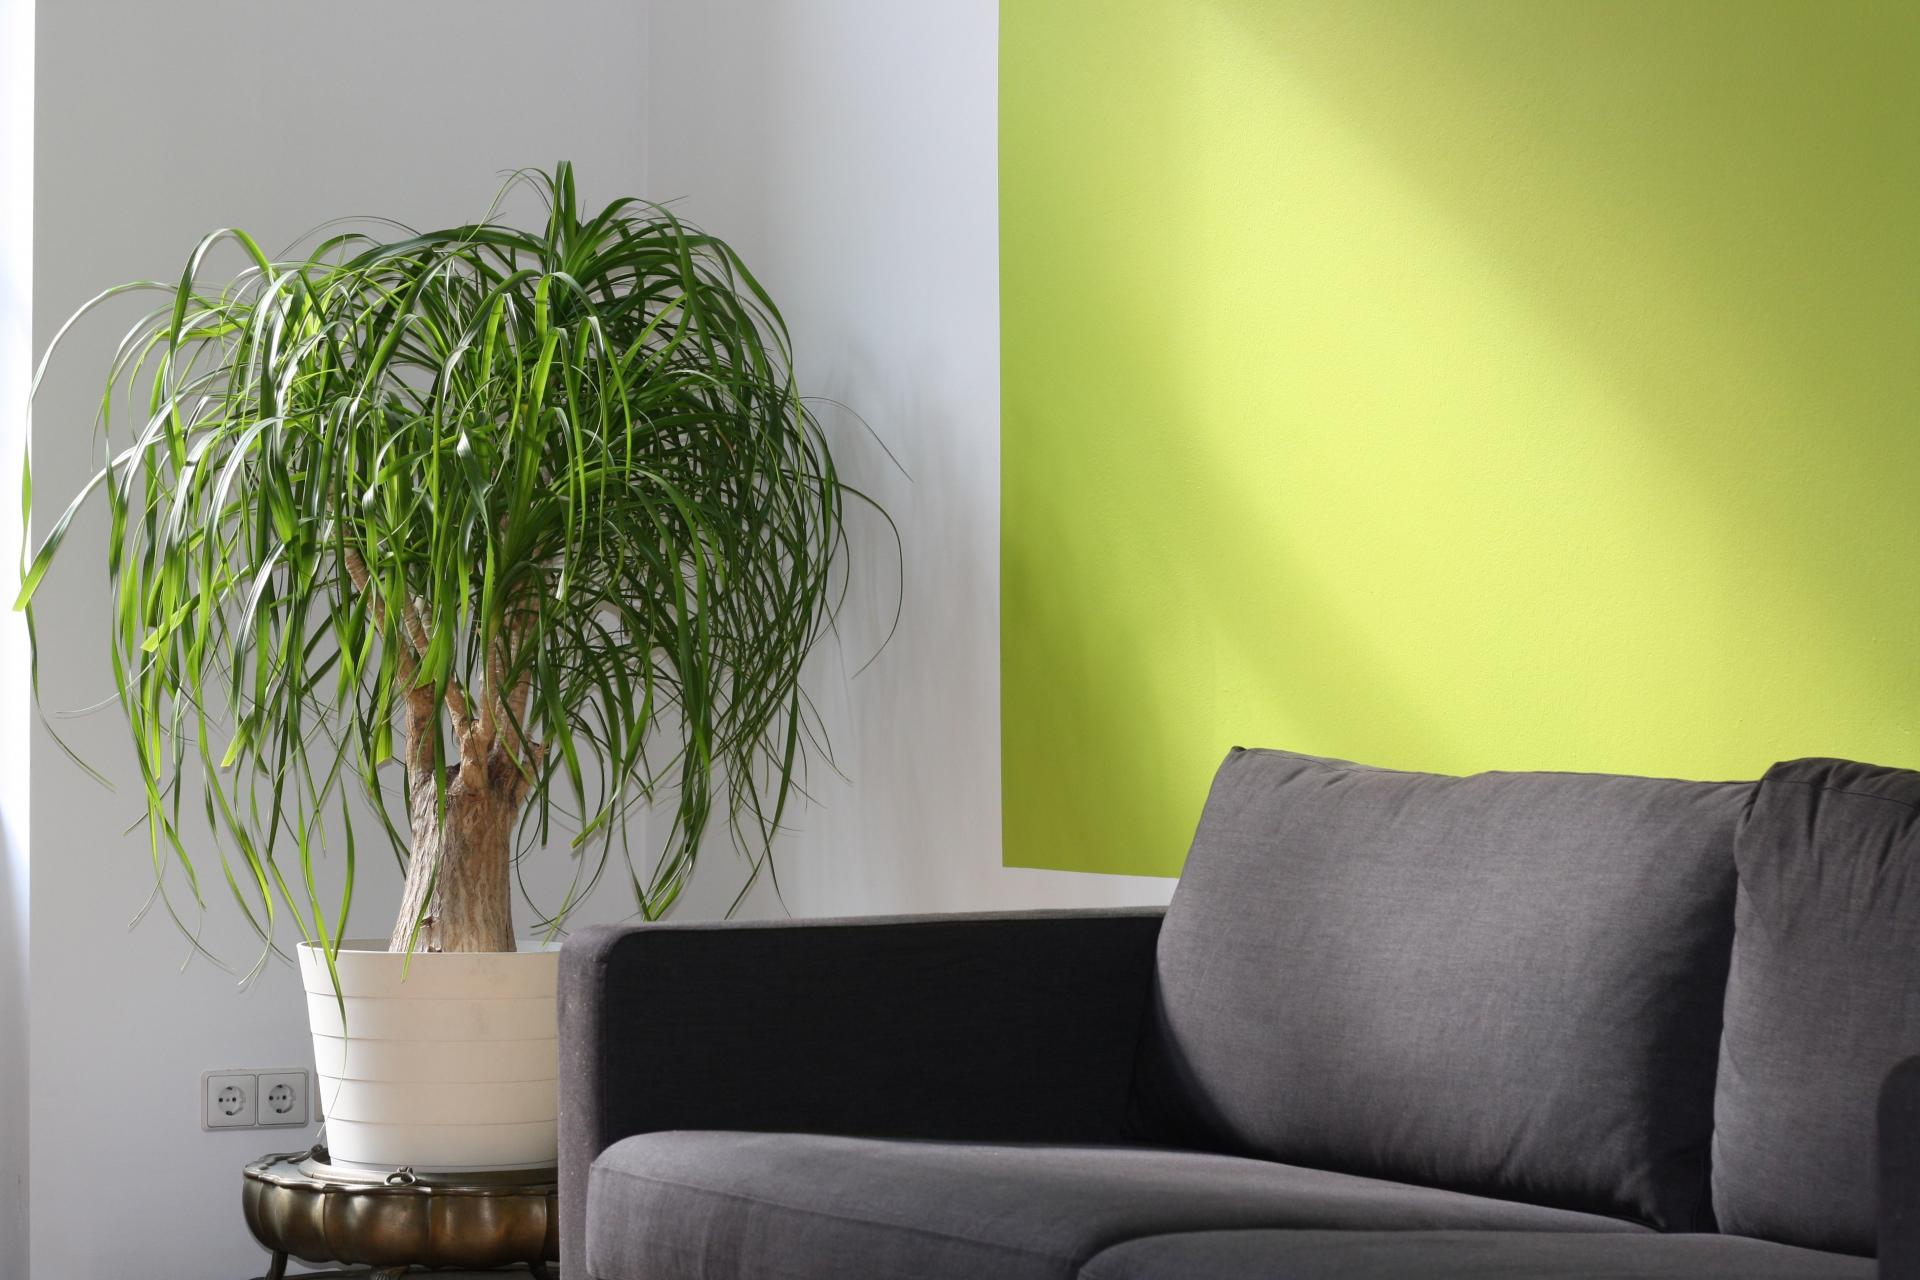 How to improve indoor air quality